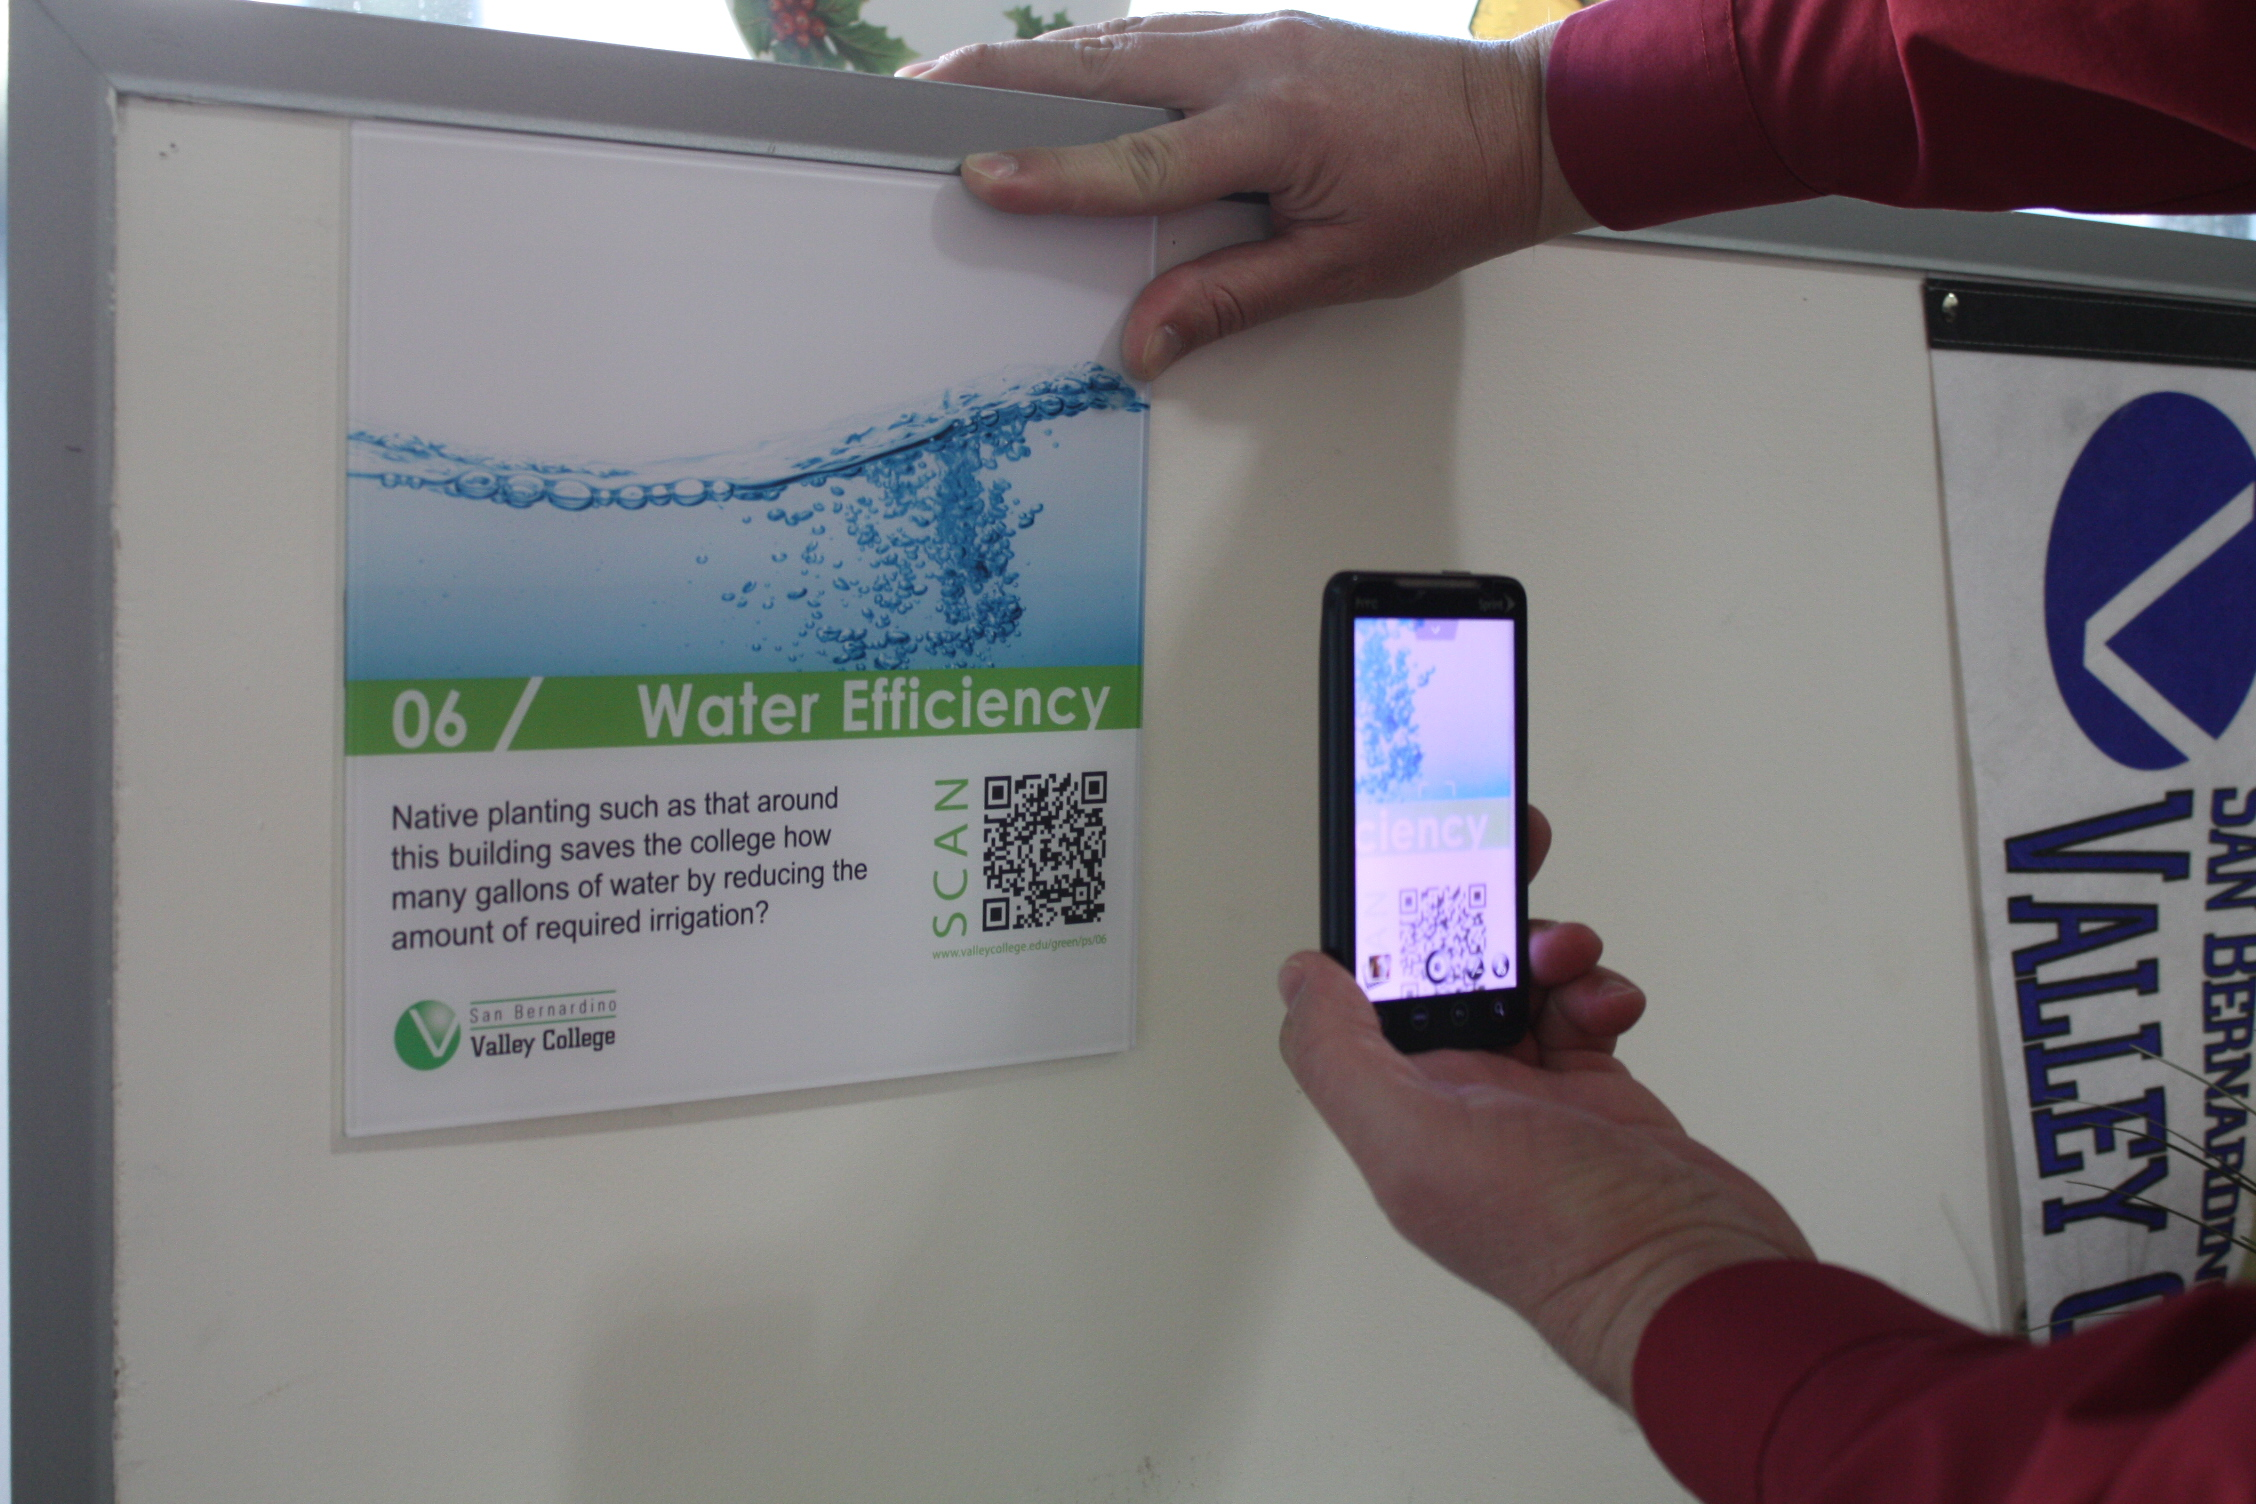 picture of person using smartphone to scan QR code on LEED sign